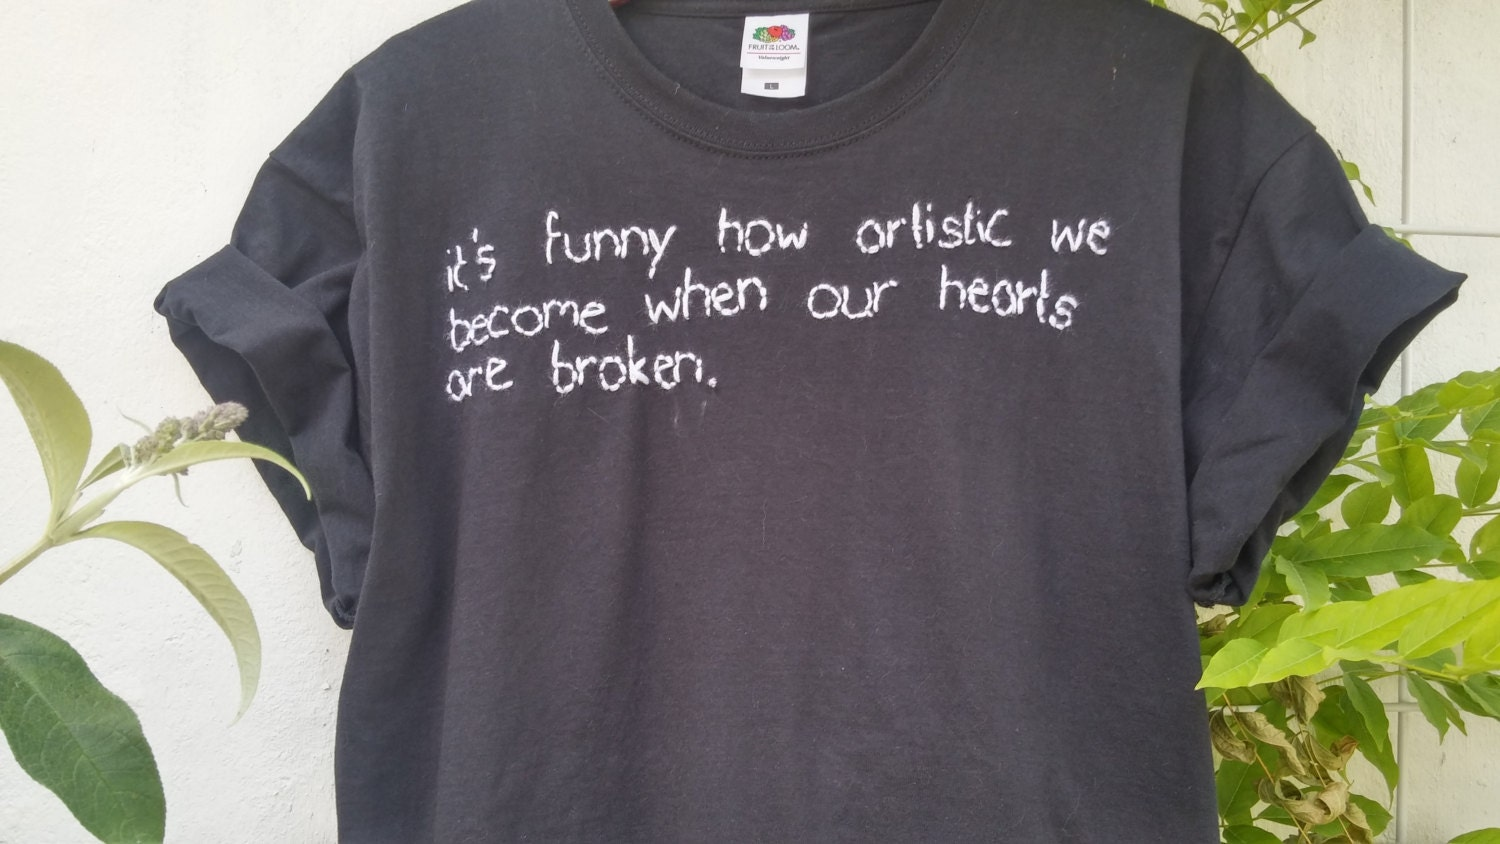 Organic Cotton Tee Tumblr Shirt Stitched Quote Artistic Hearts Pale